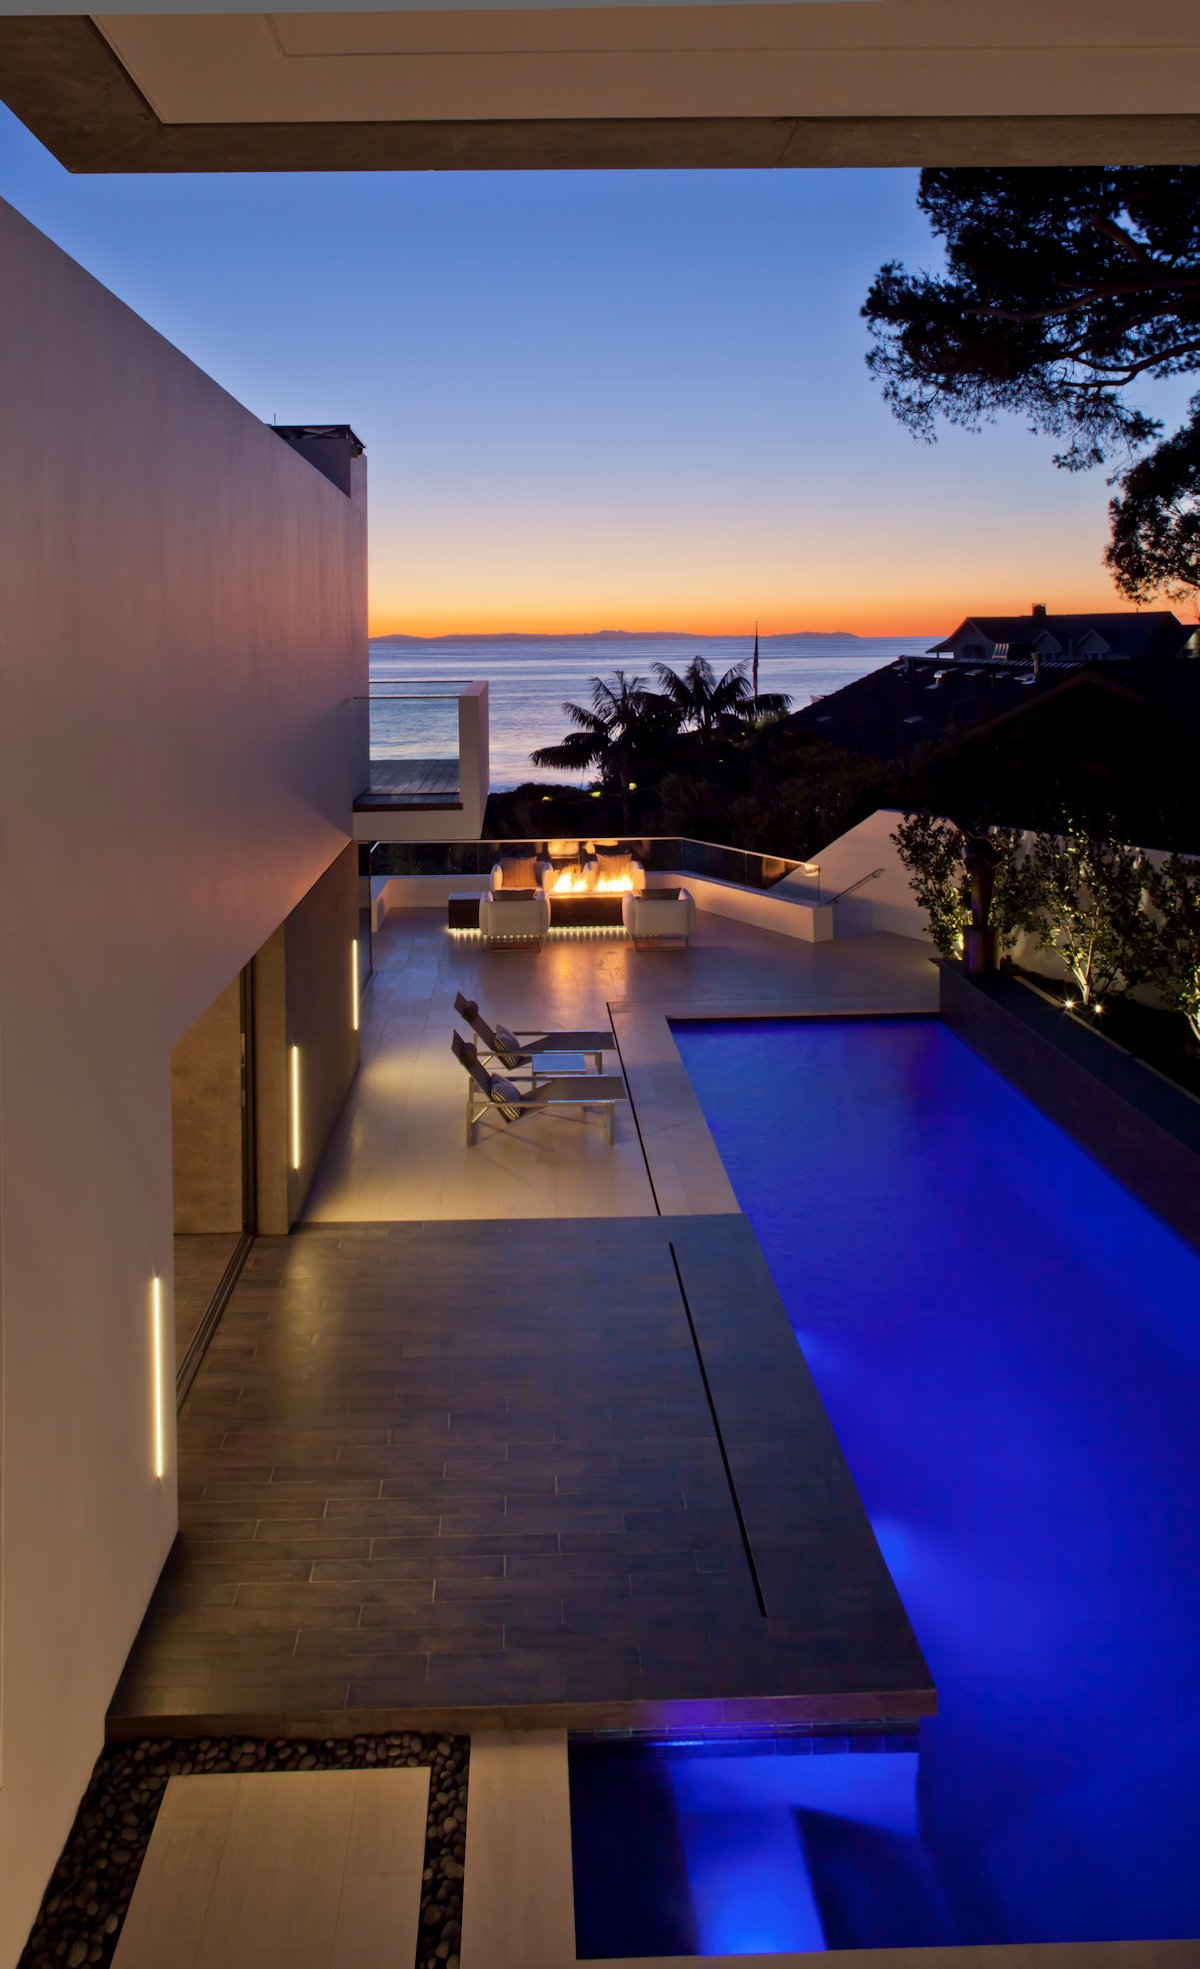 Outdoor Pool, Lighting, Beach House in Laguna Beach, California